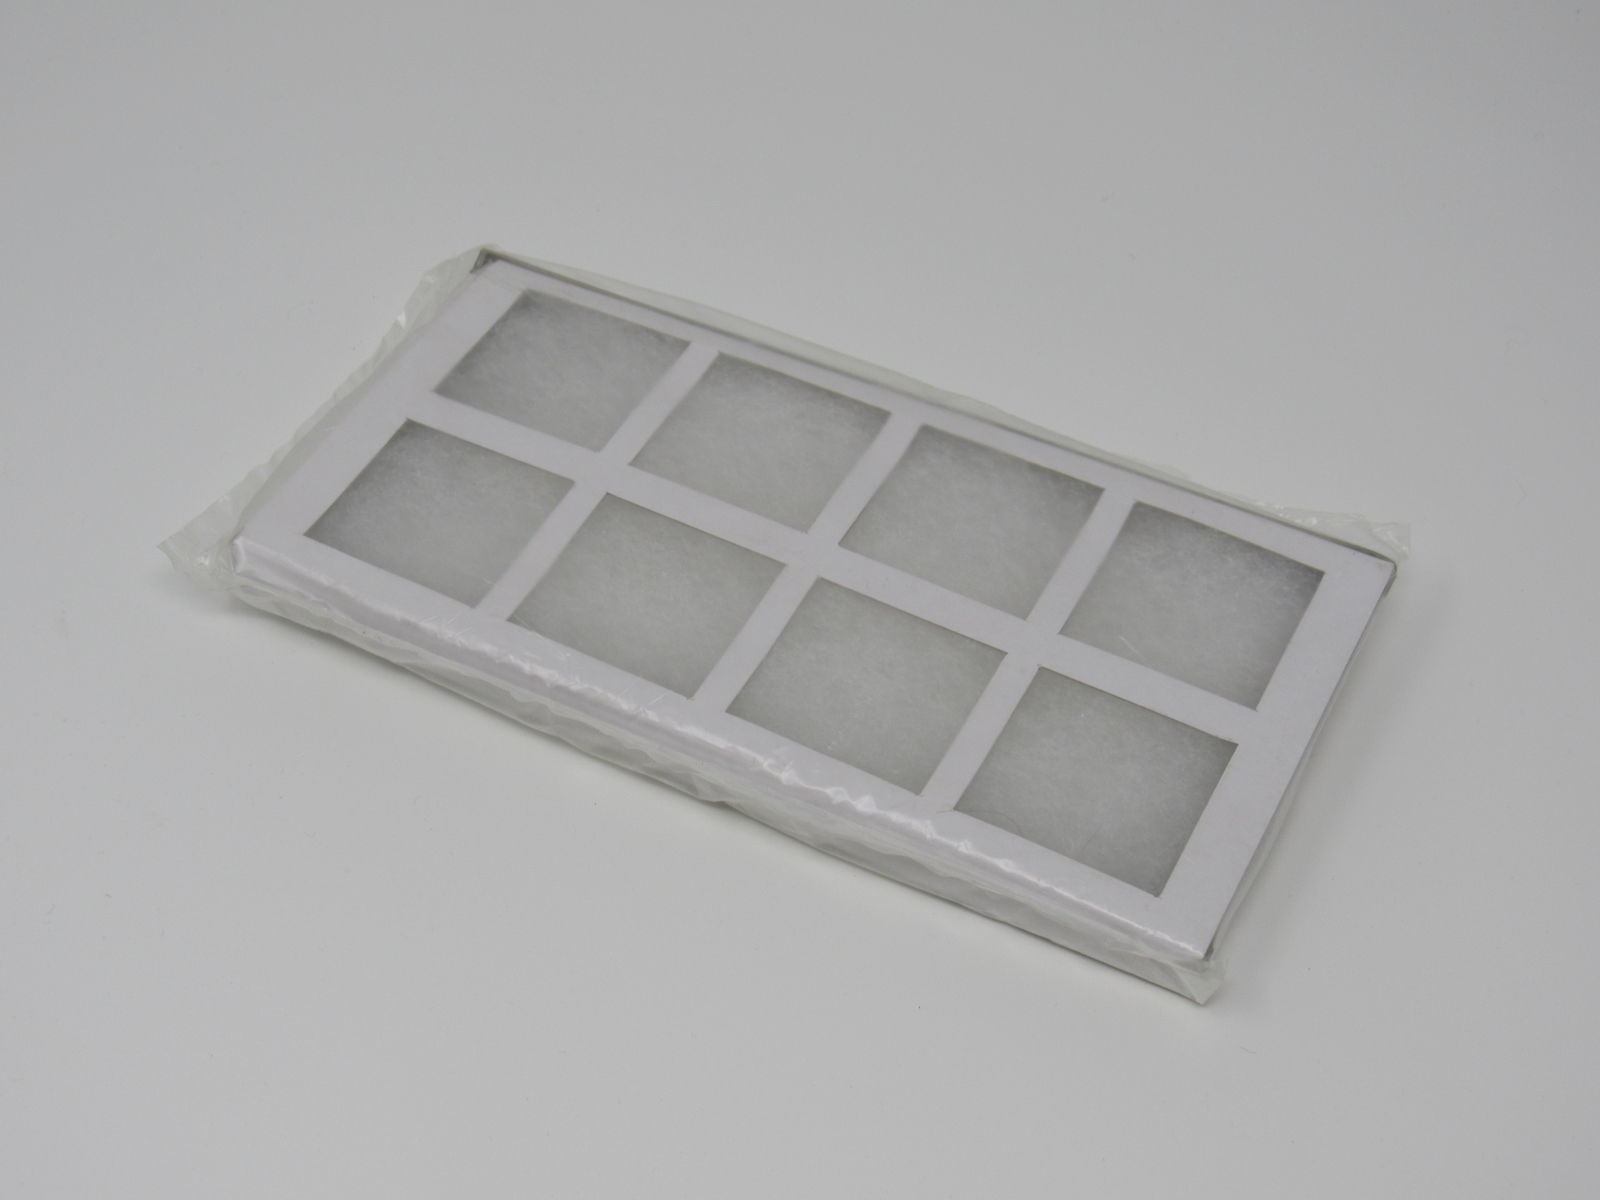 MGT Online Air Filter 2000 Series 8in L x 4in W x 1in D White Air Purifier